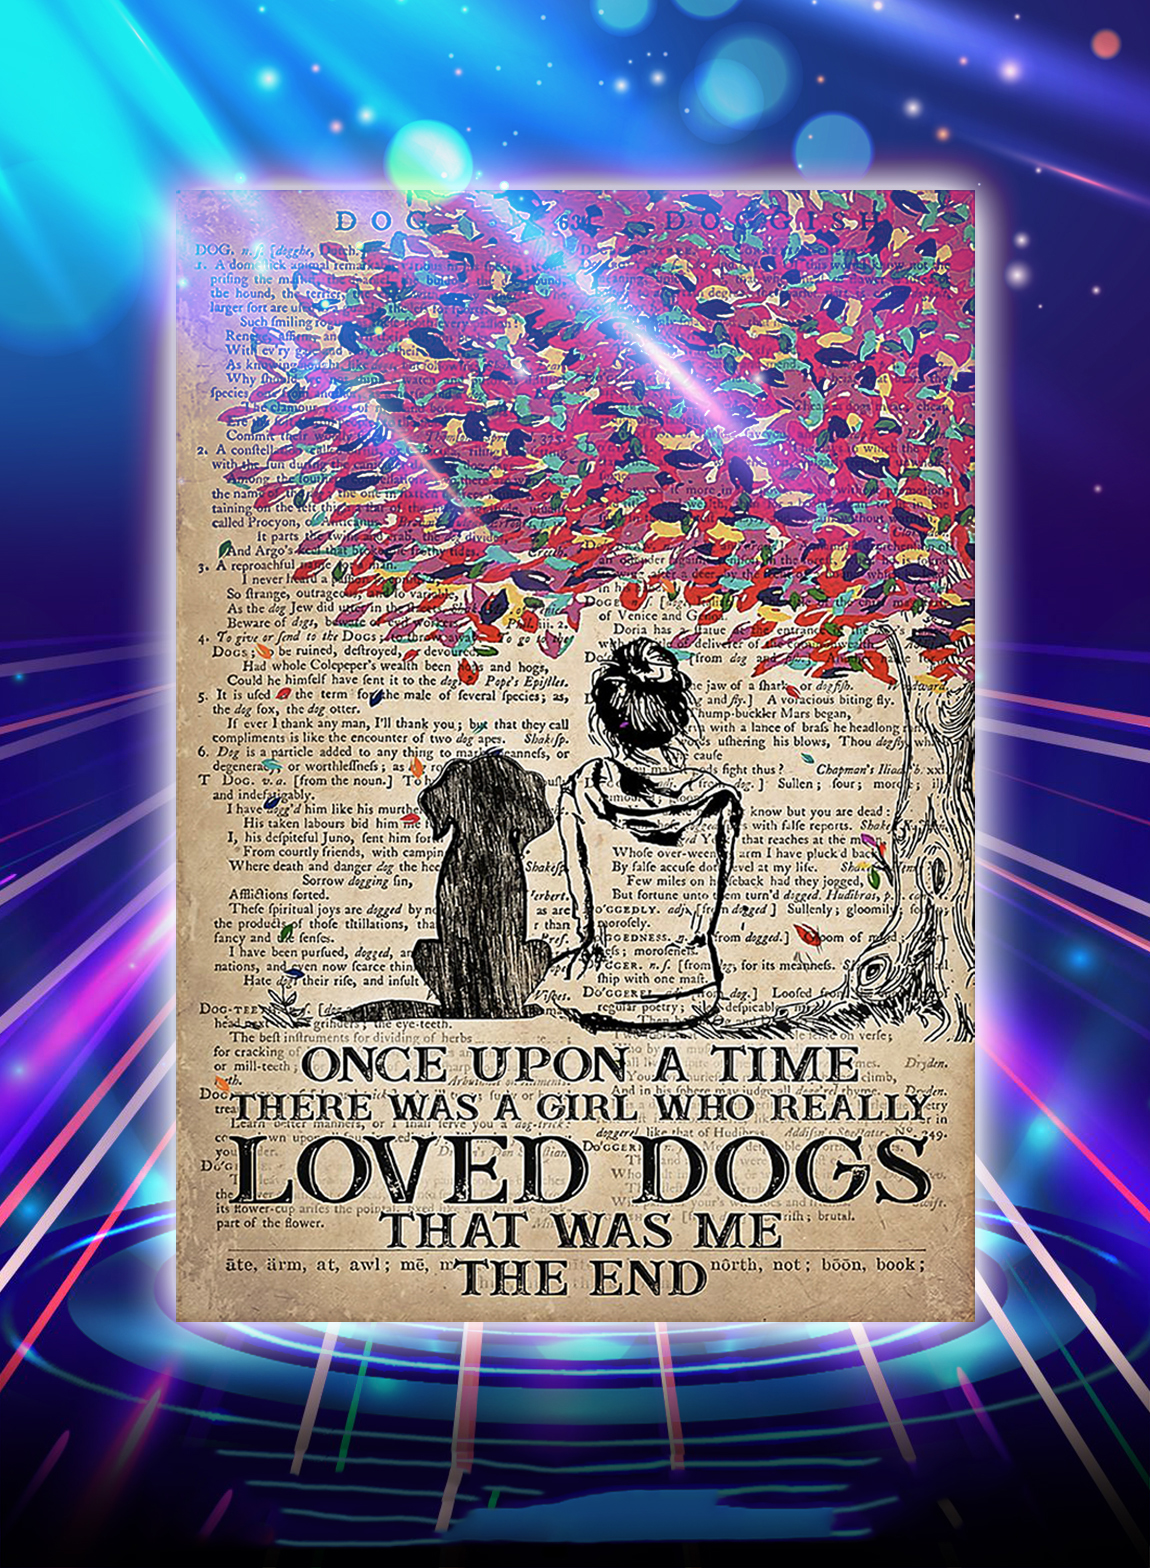 Once upon a time there was a girl who really loved dogs poster - A3